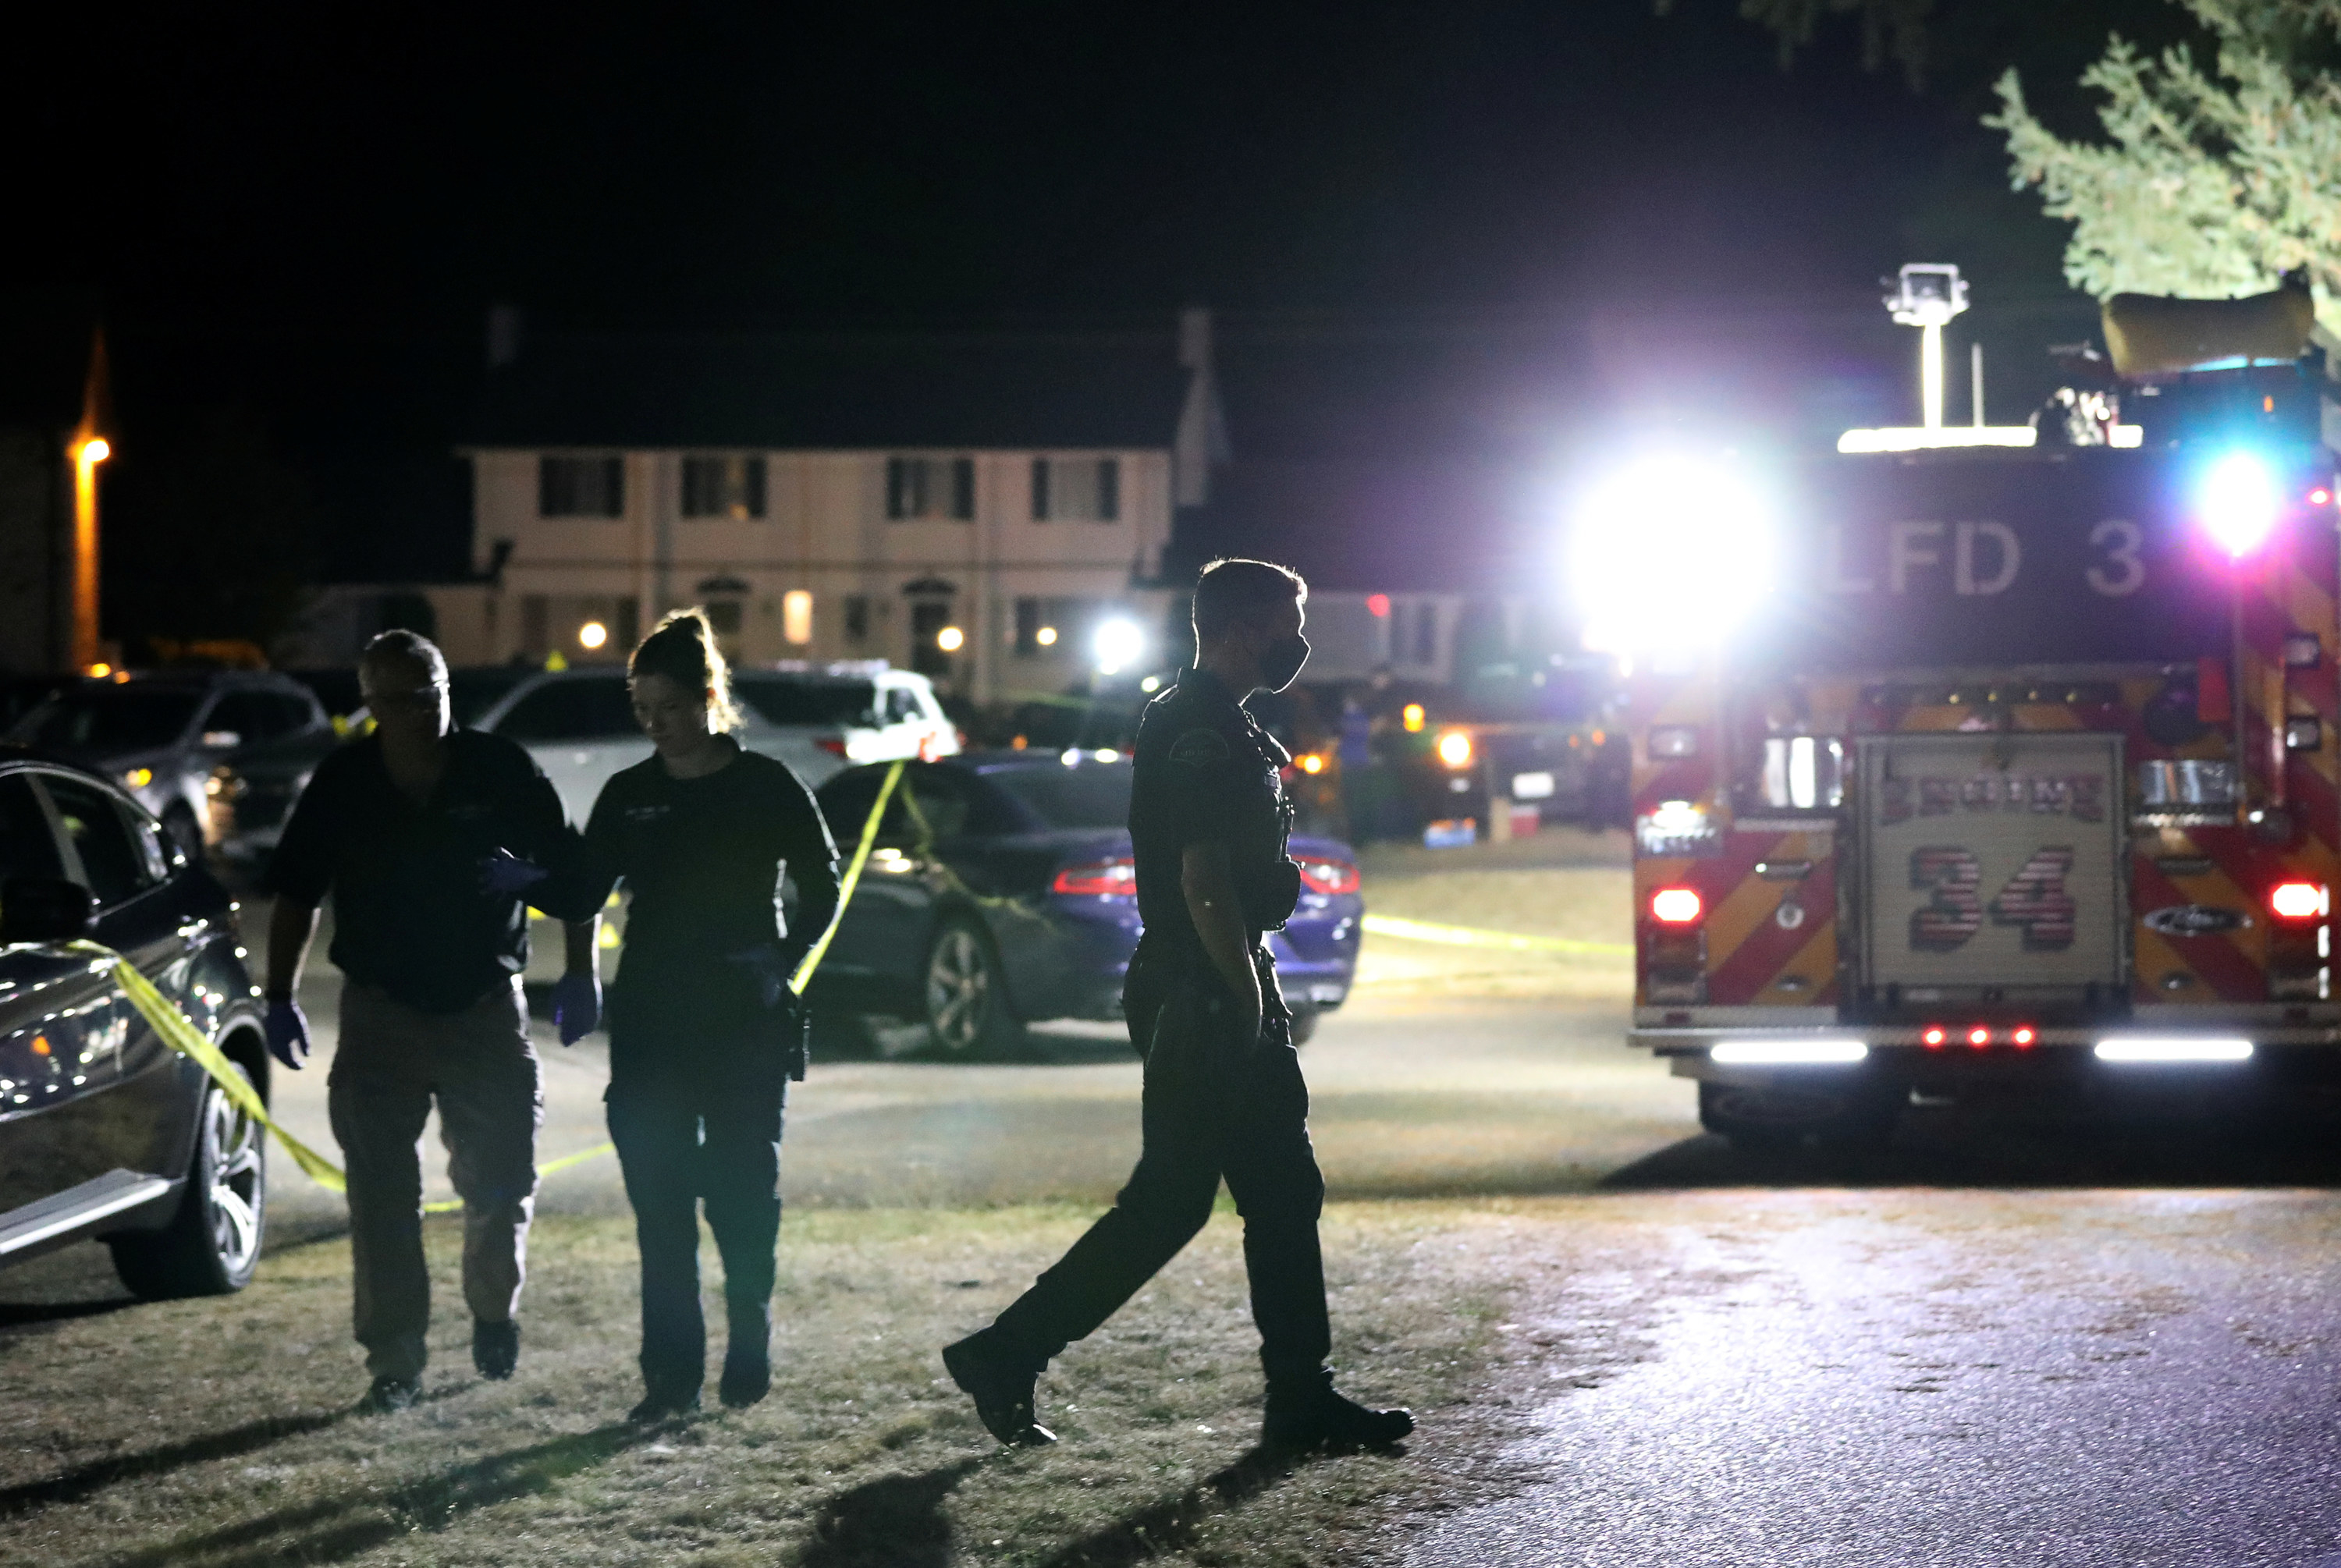 Three people walk among cars as a fire truck shines its lights at the camera.